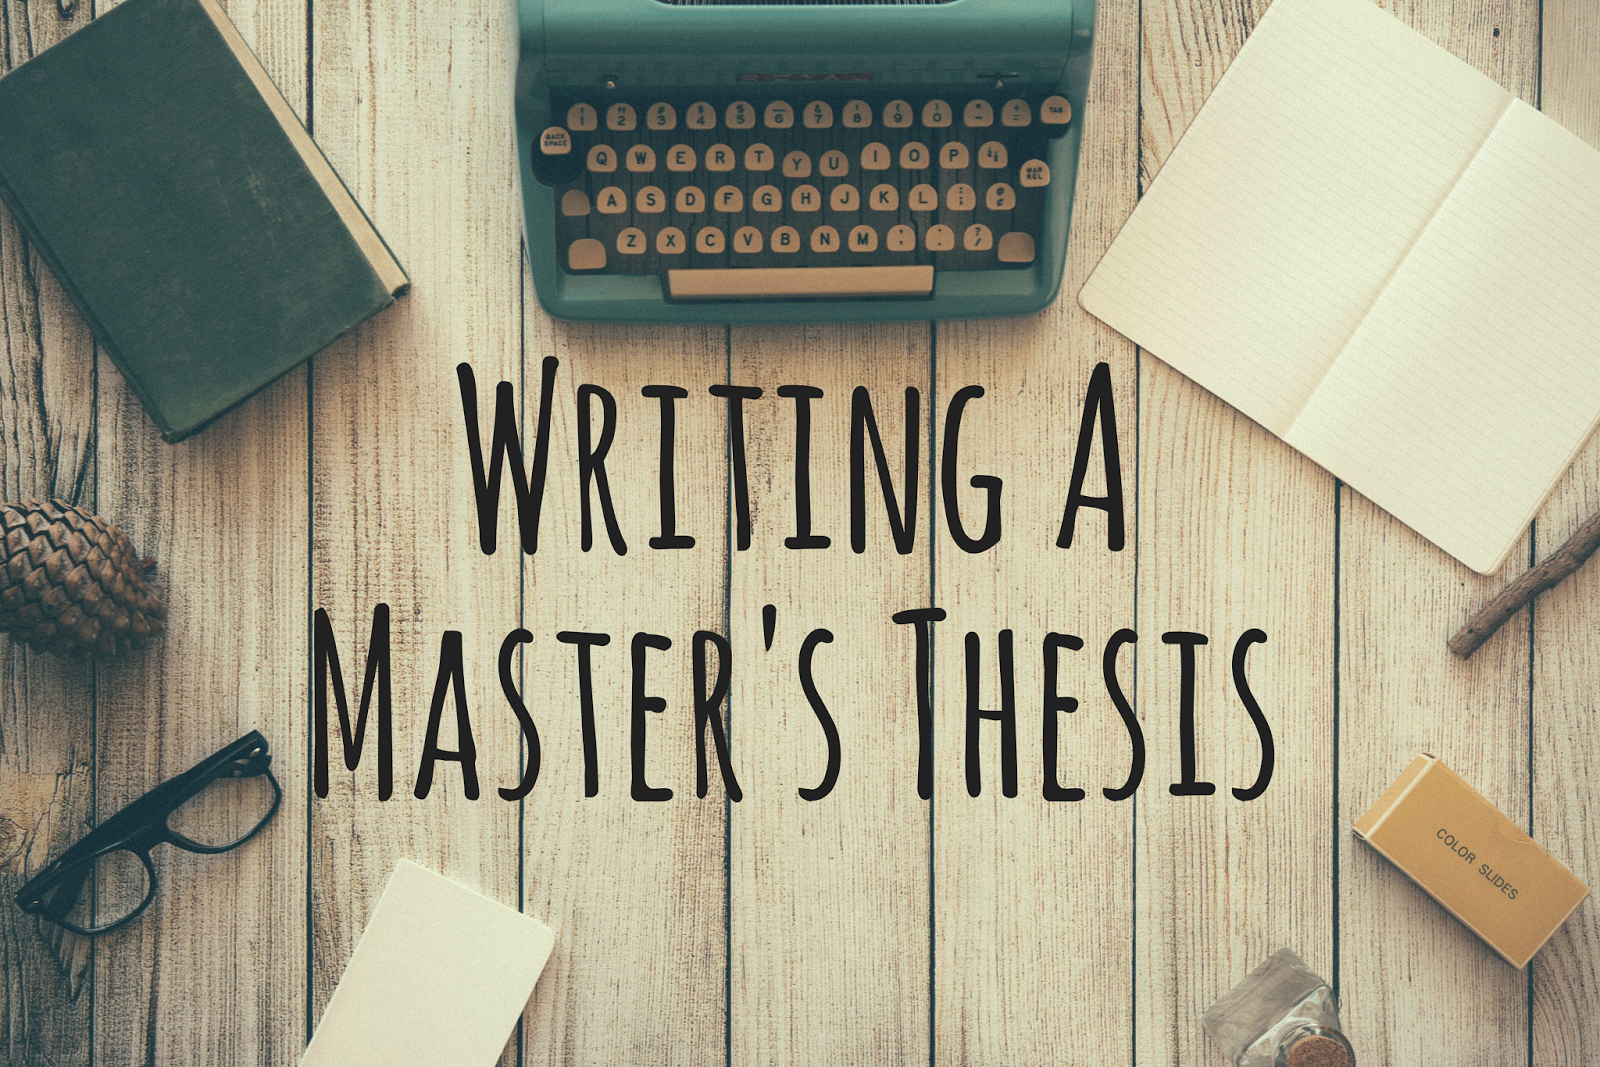 masters thesis language